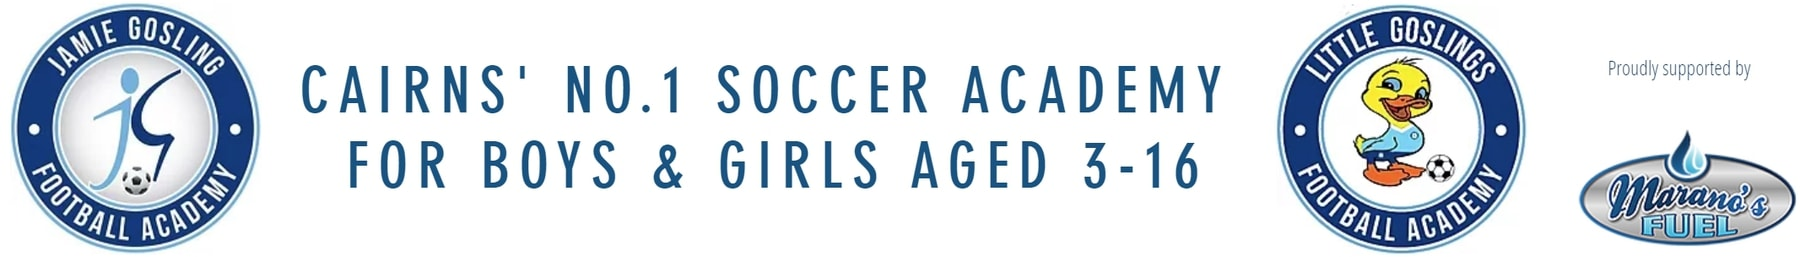 CAIRNS' NO.1 SOCCER ACADEMY FOR BOYS & GIRLS AGED 3-16